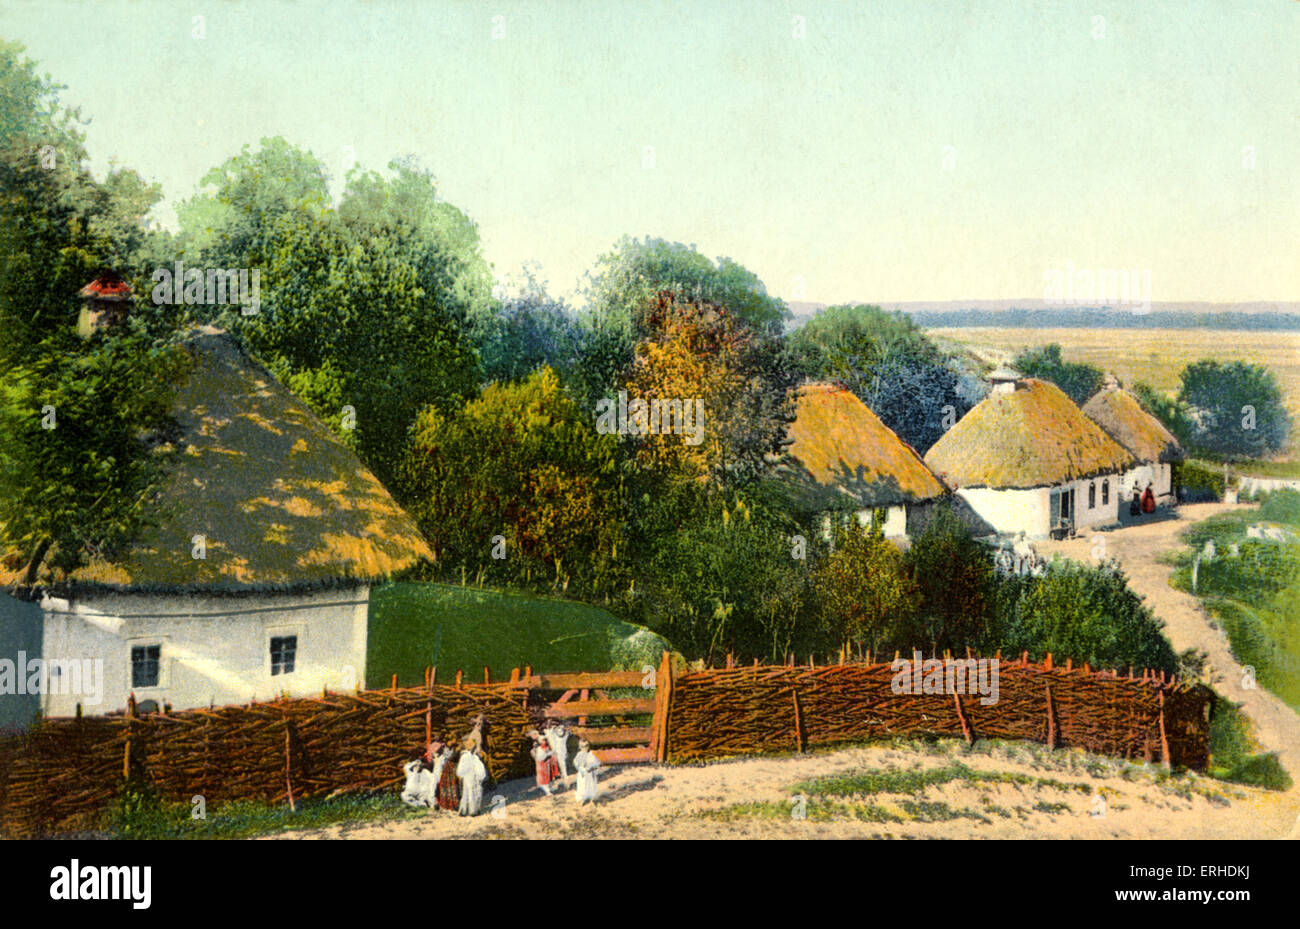 Ukrainian village with thatched houses. Painting  postcard. Pre-Bolshevik revolution. Early 20th century Ukraine - Stock Image